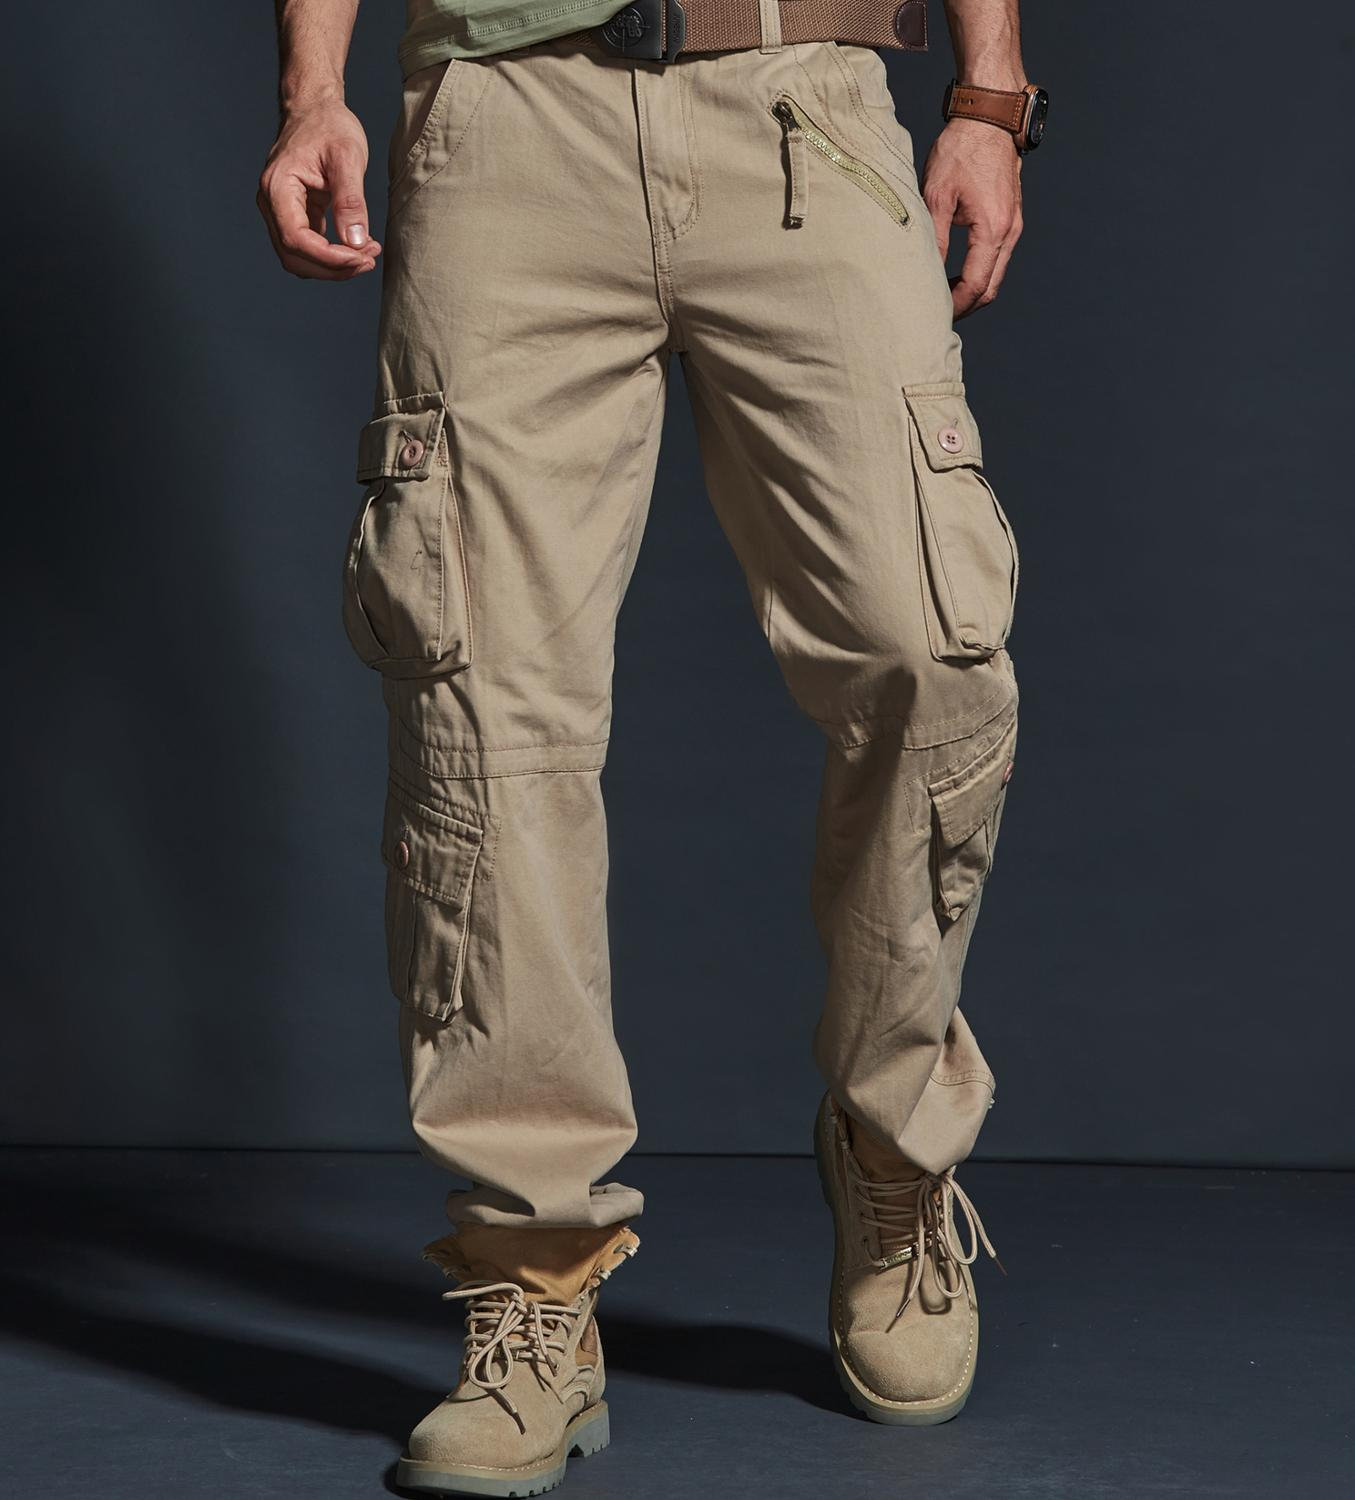 2020 NEW Military Pant Tactical Cargo Pants Man Cargo Pants Camouflage Overalls Men  Elastic Straight  Casual Pants Male FSN-022